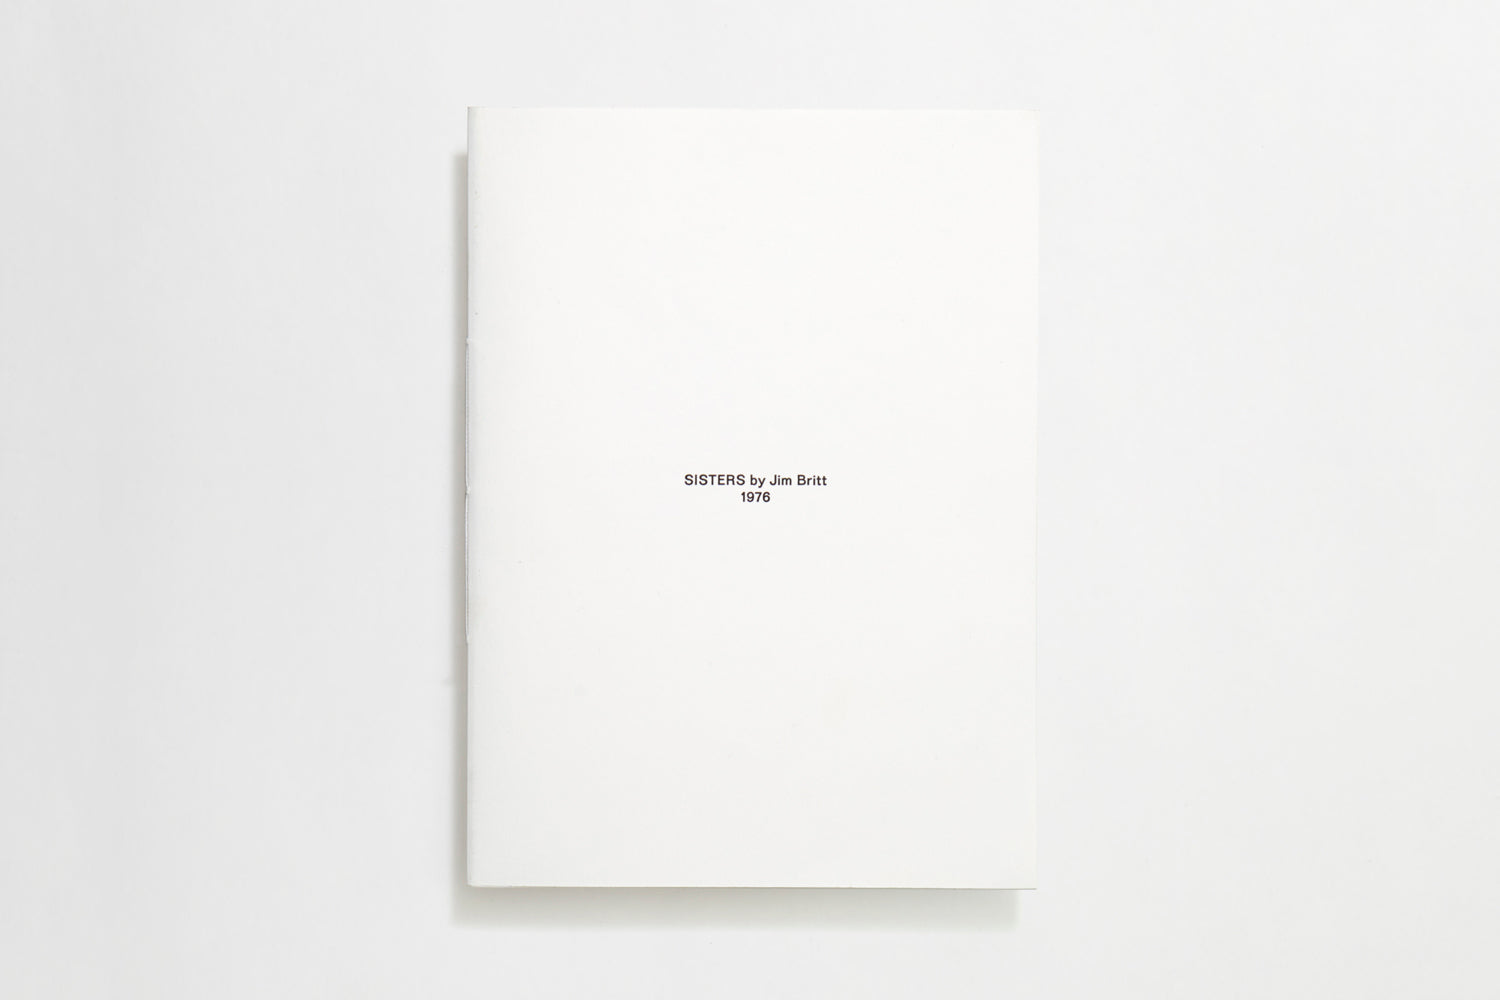 24-page white thread-sewn booklet